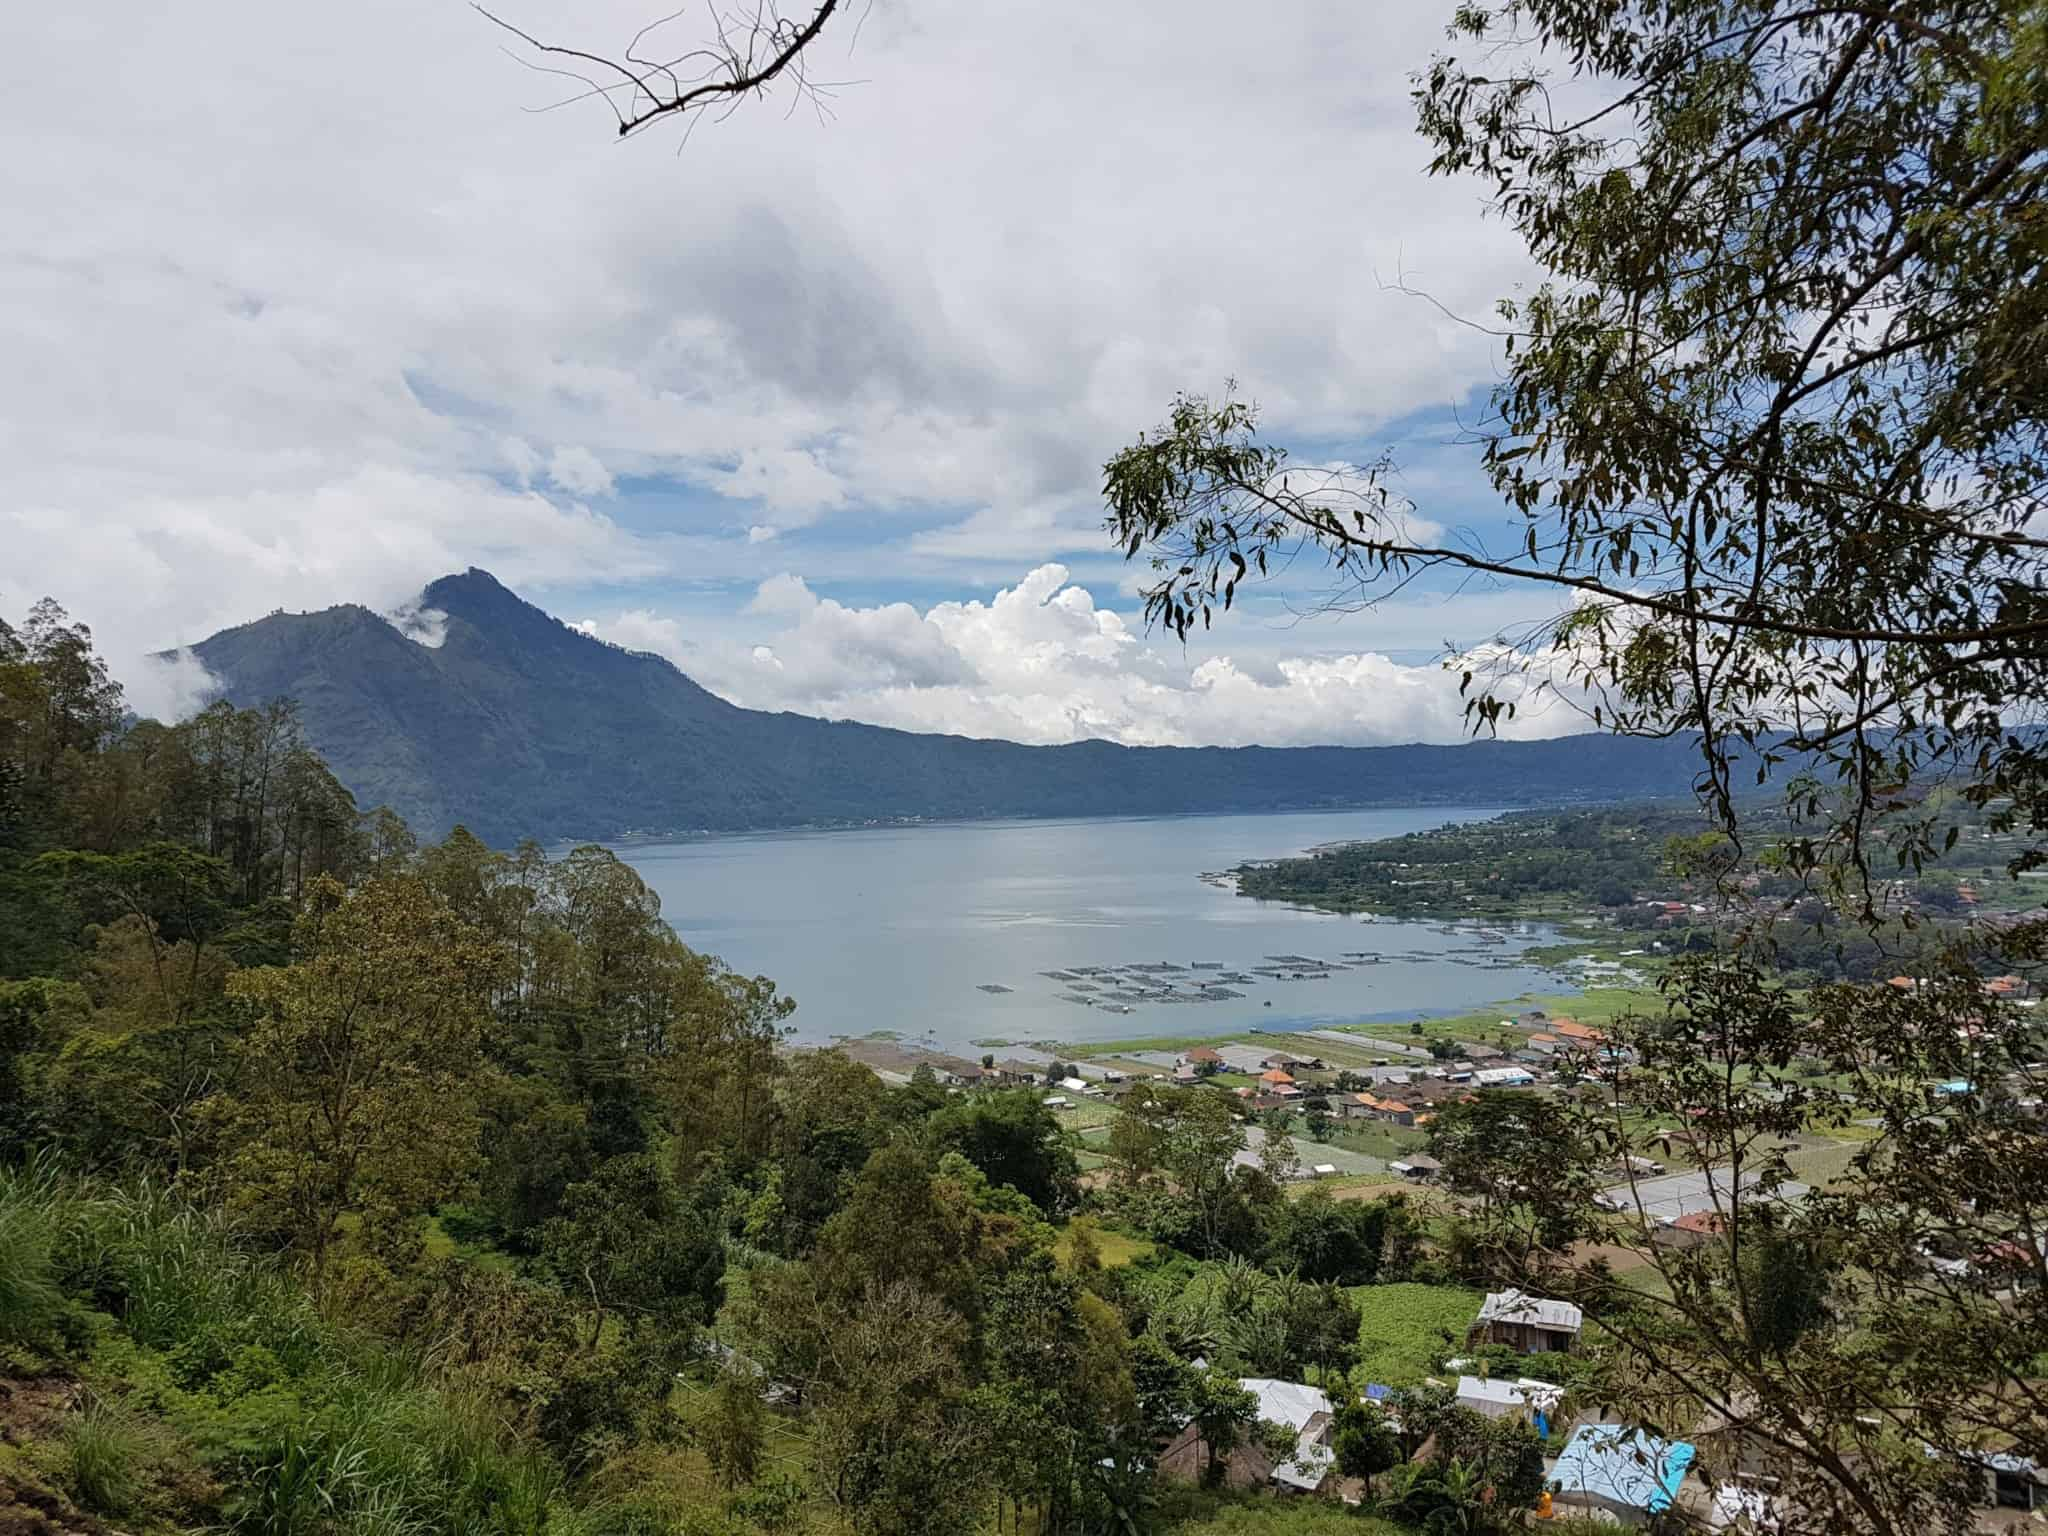 Bali, roadtrip en scooter direction le lac Danau Batur 💧 6